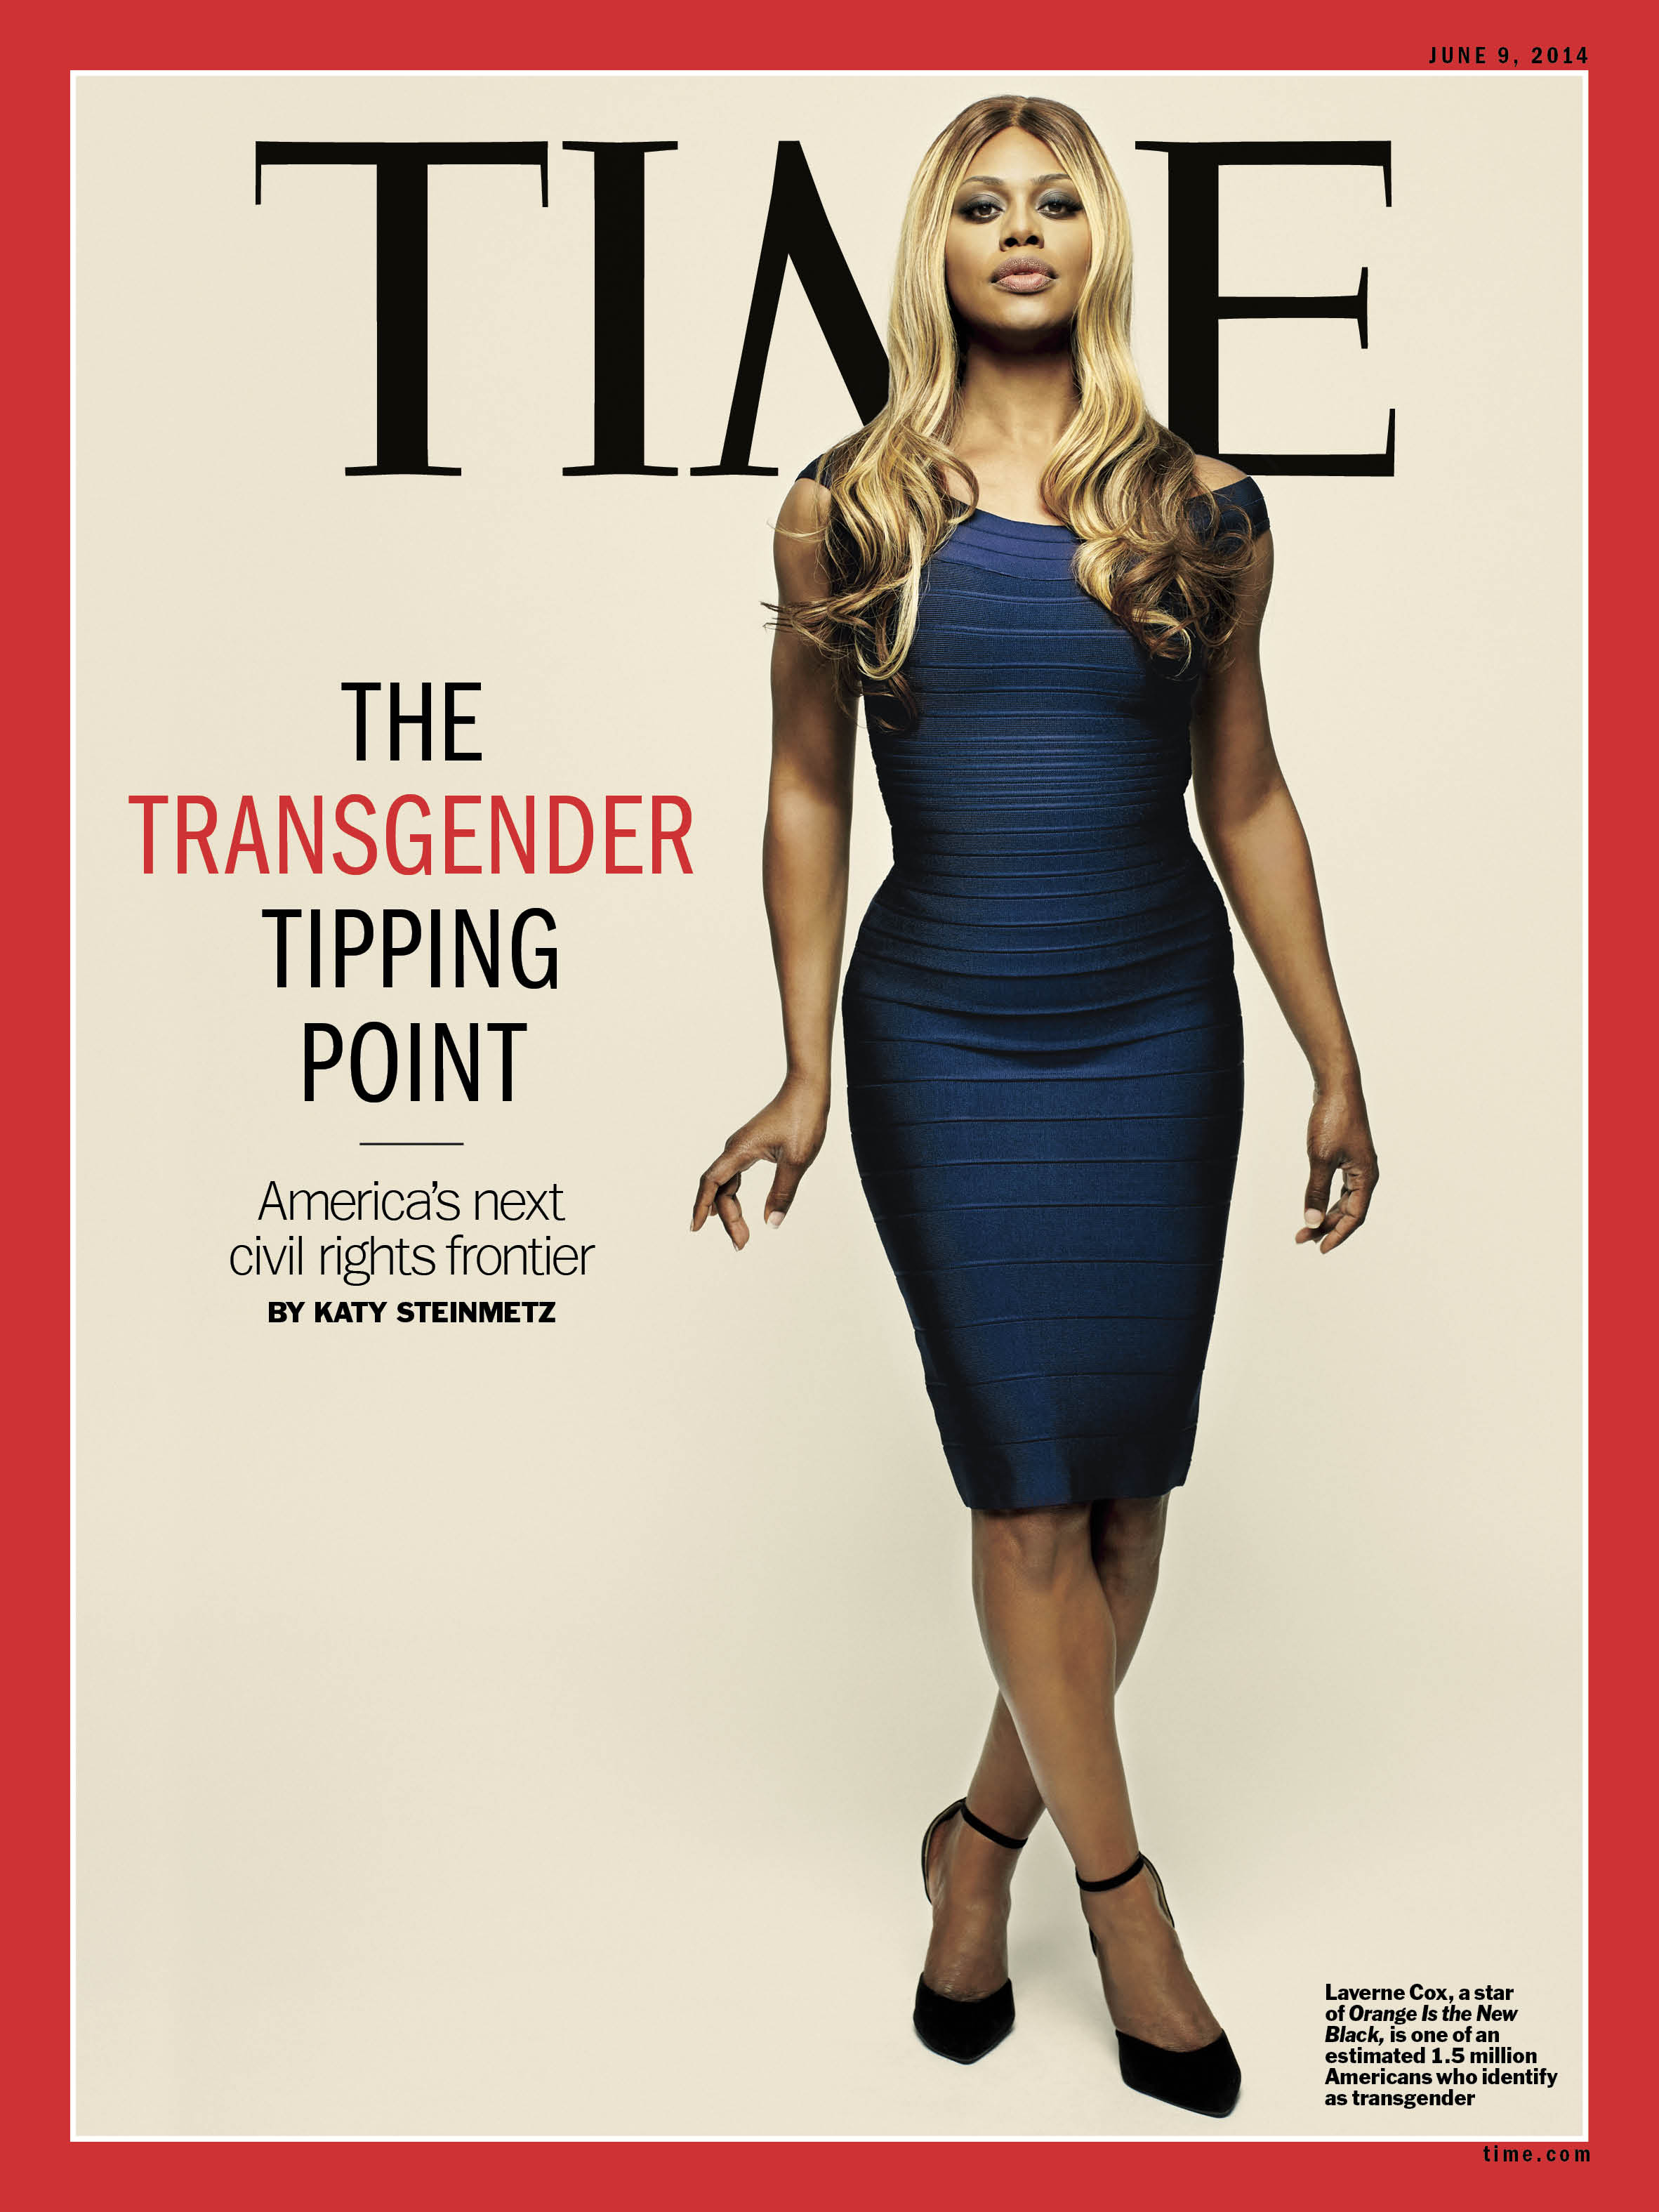 Laverne Cox on the cover of TIME, 2014